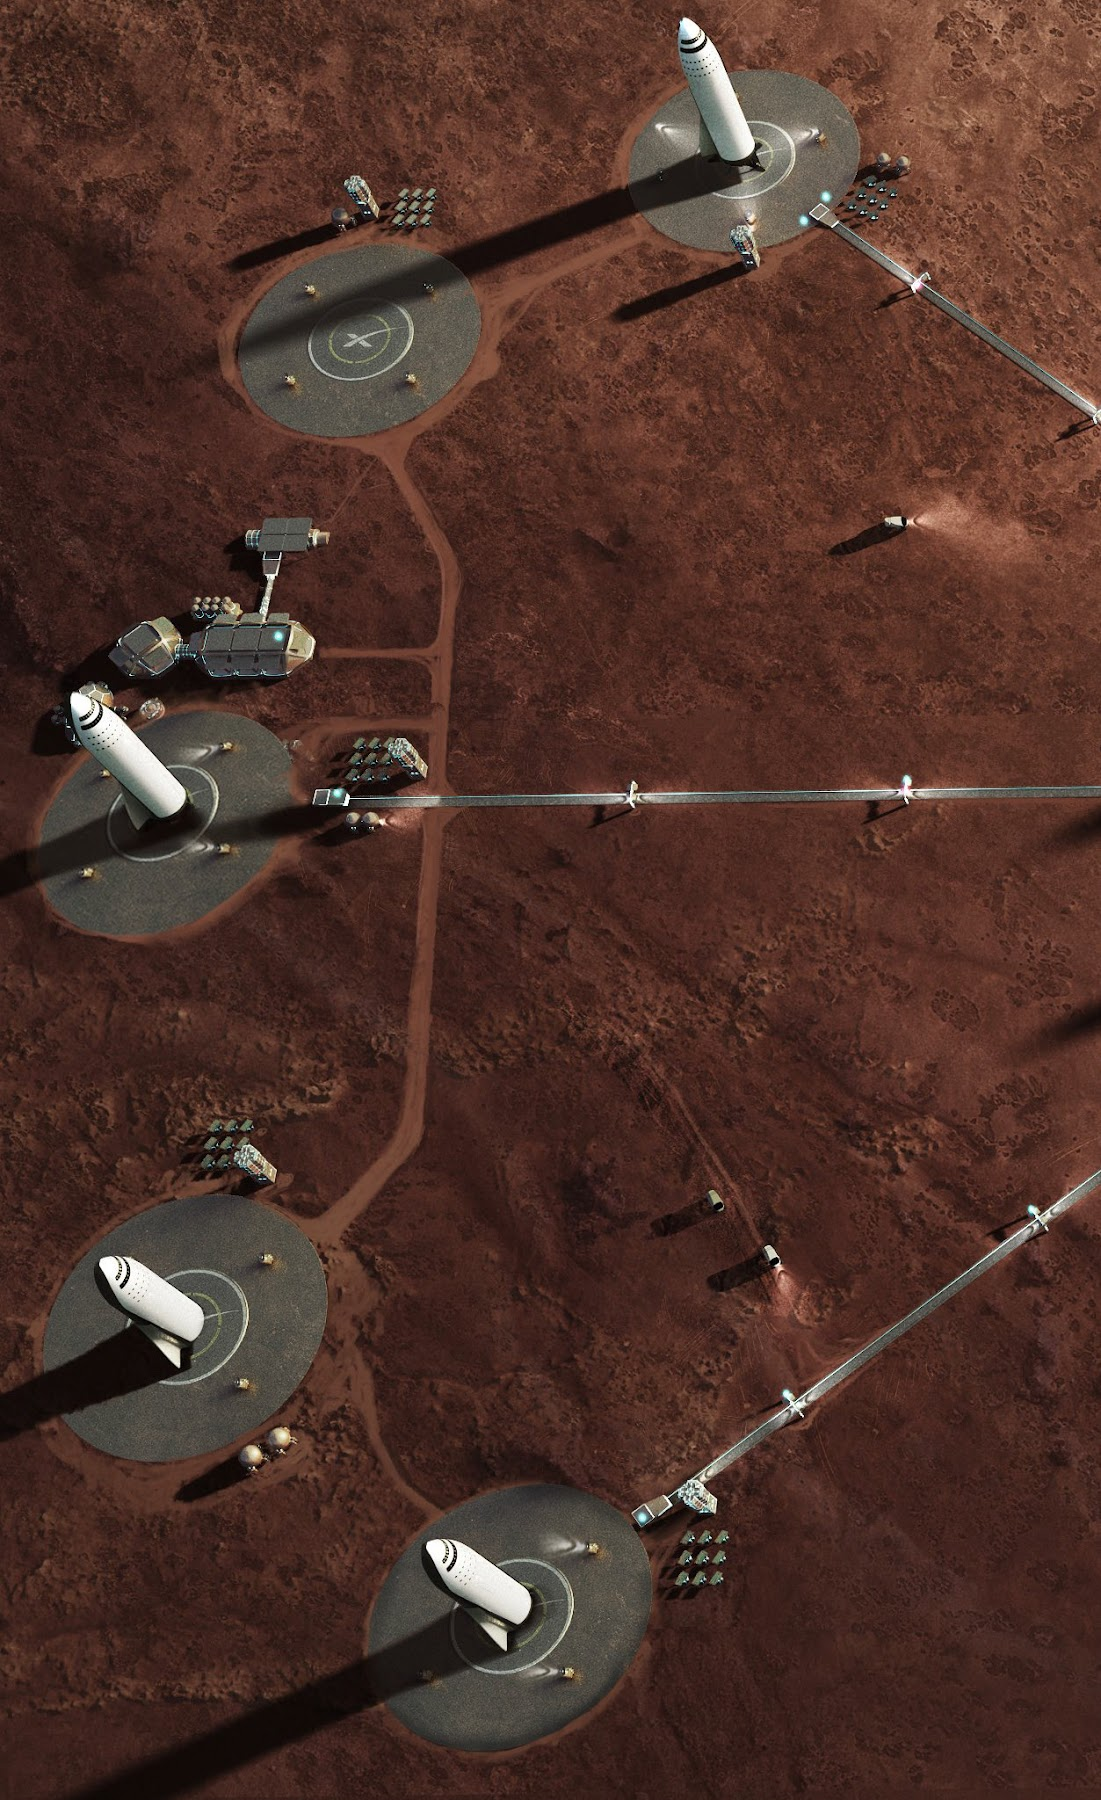 SpaceX's Mars Base Alpha spaceport